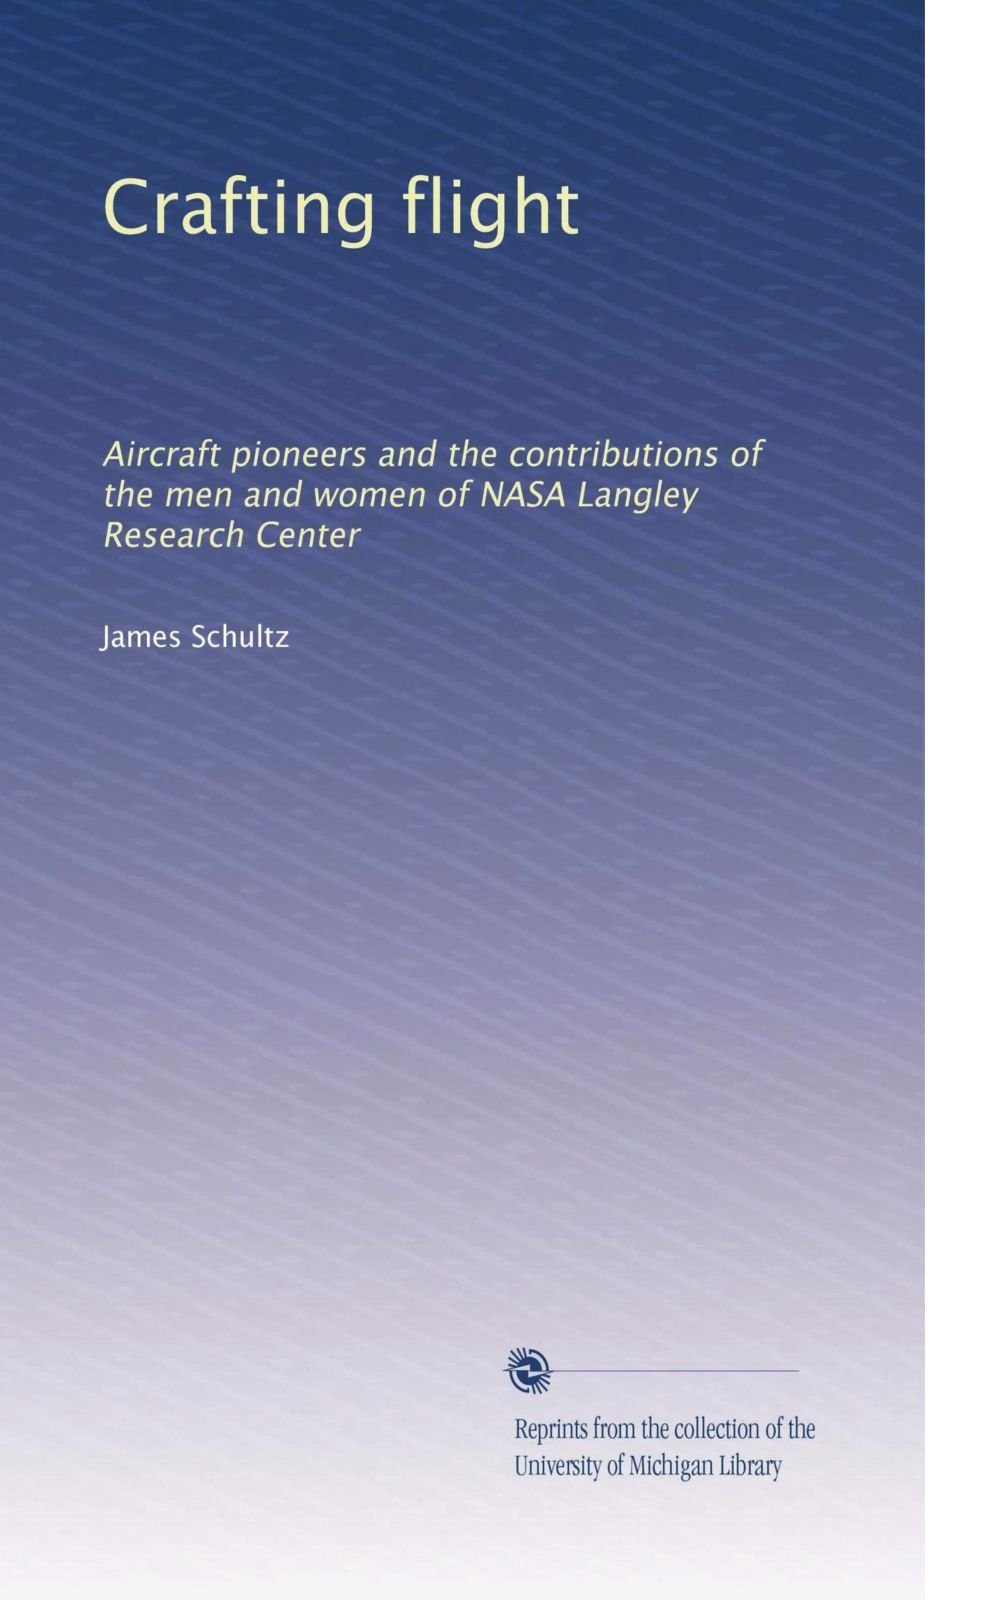 Download Crafting flight: Aircraft pioneers and the contributions of the men and women of NASA Langley Research Center ebook